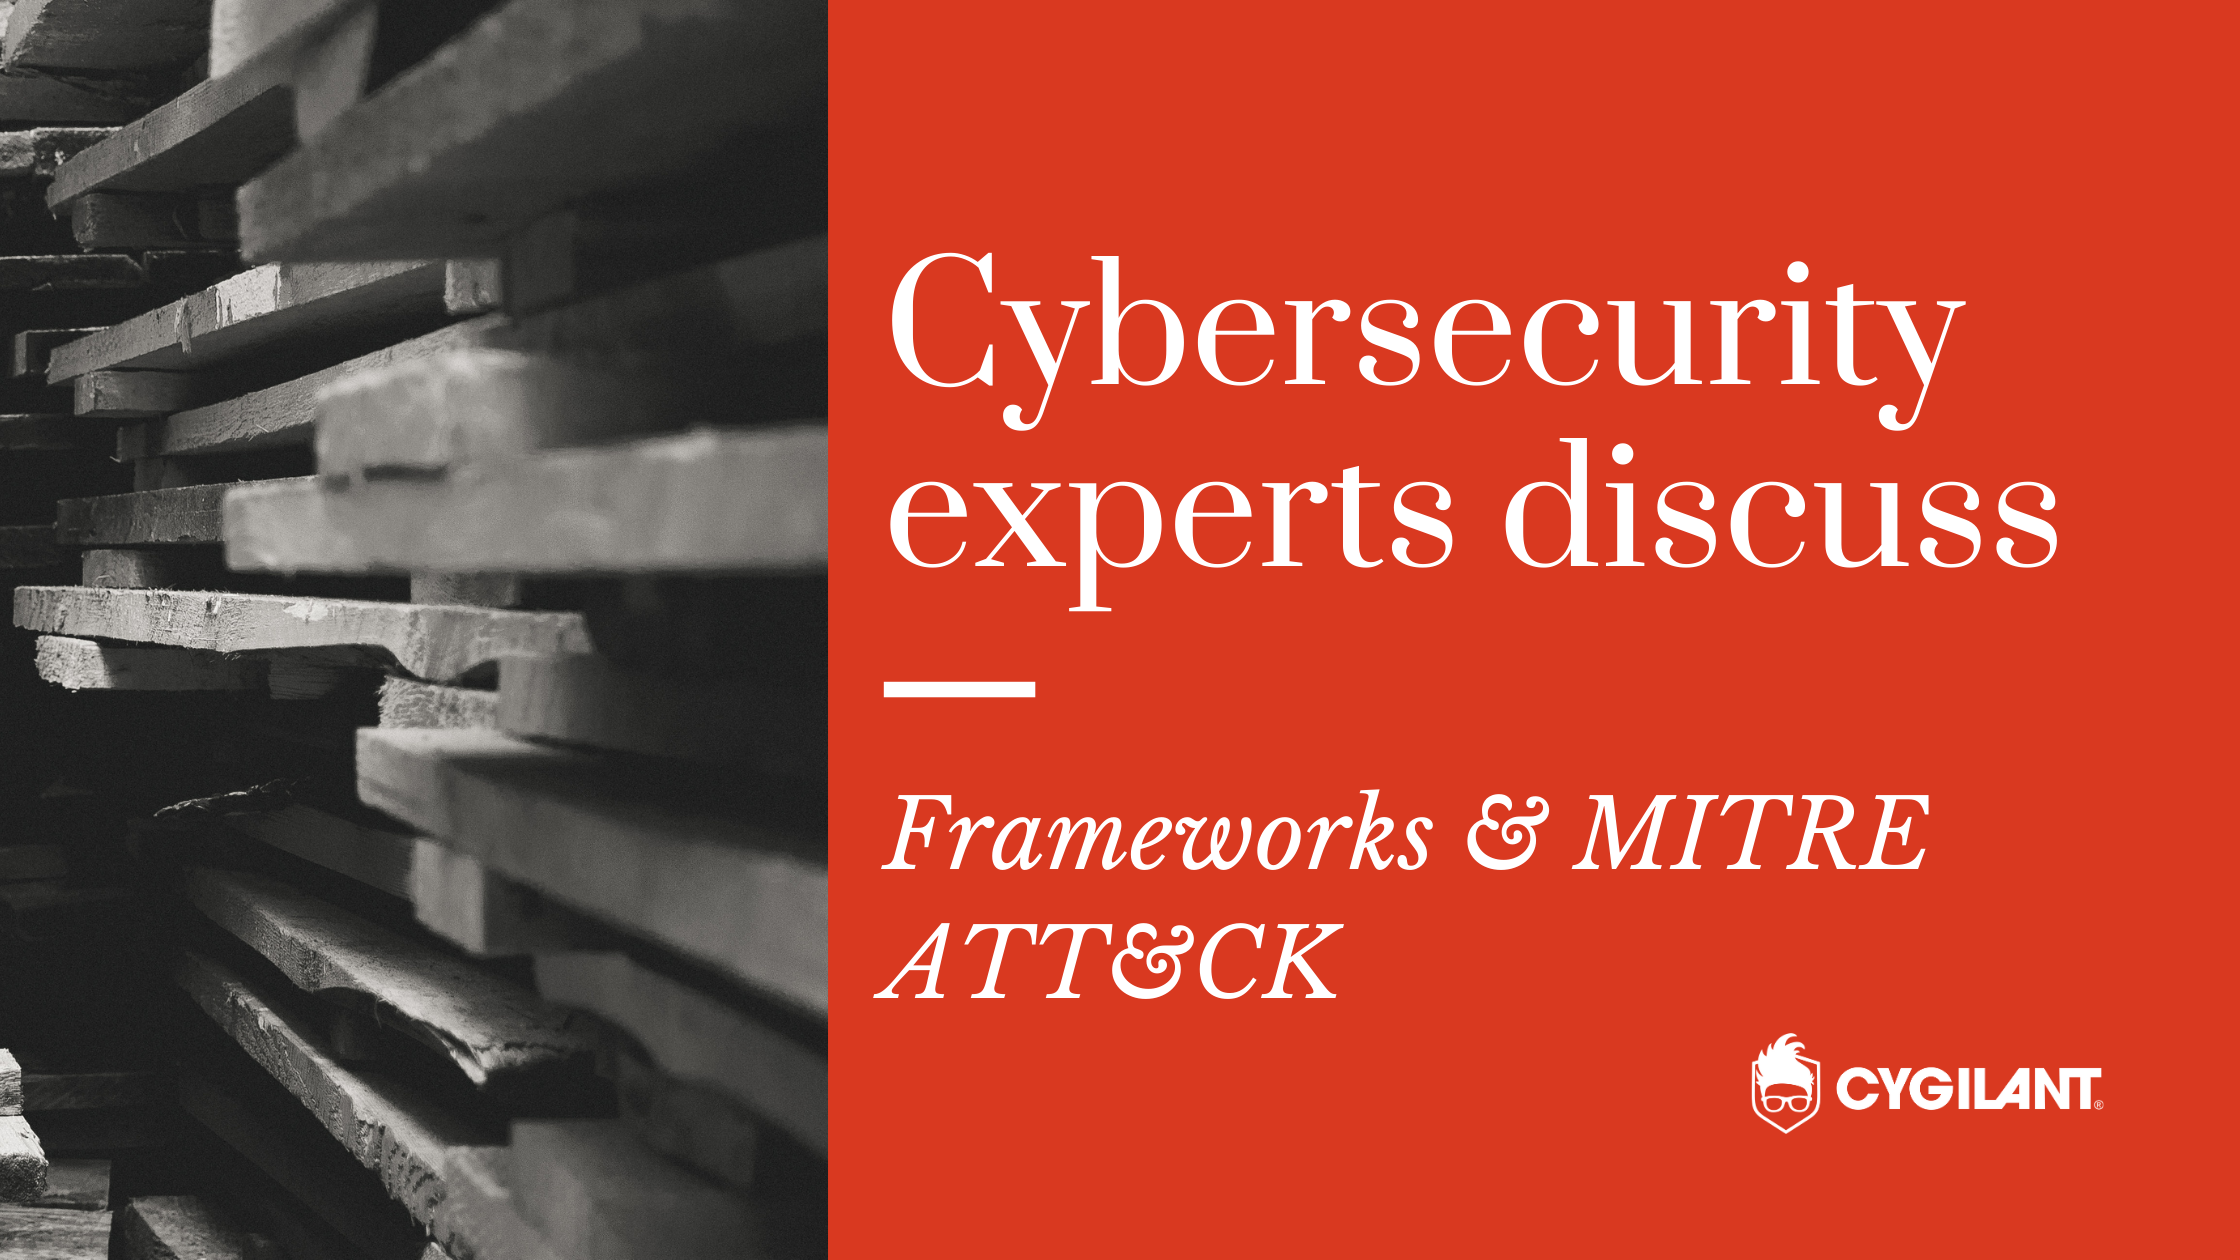 Cybersecurtiy experts discuss (3)